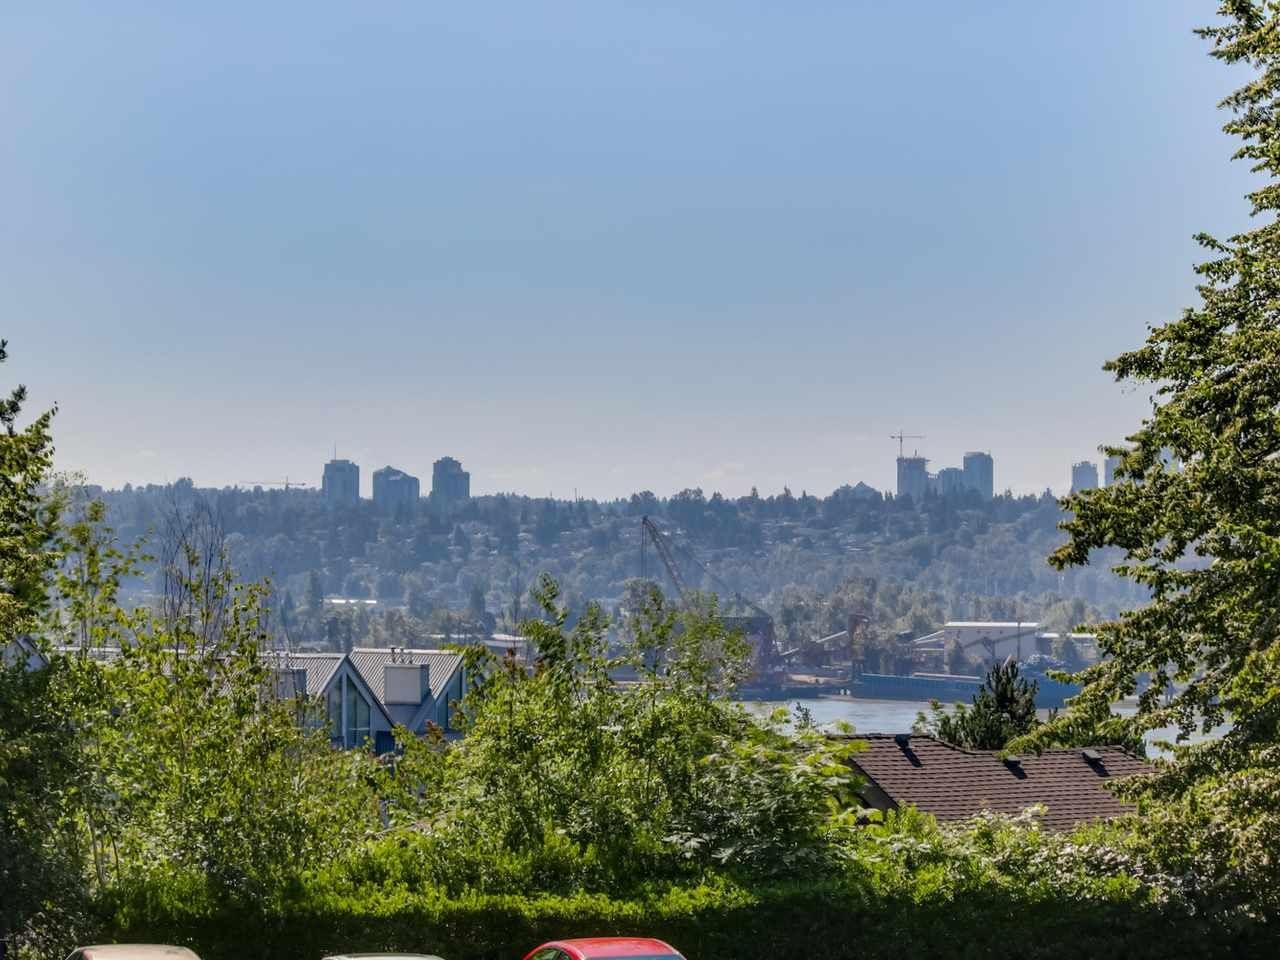 """Main Photo: 105 67 MINER Street in New Westminster: Fraserview NW Condo for sale in """"FRASERVIEW PARK"""" : MLS®# R2087095"""